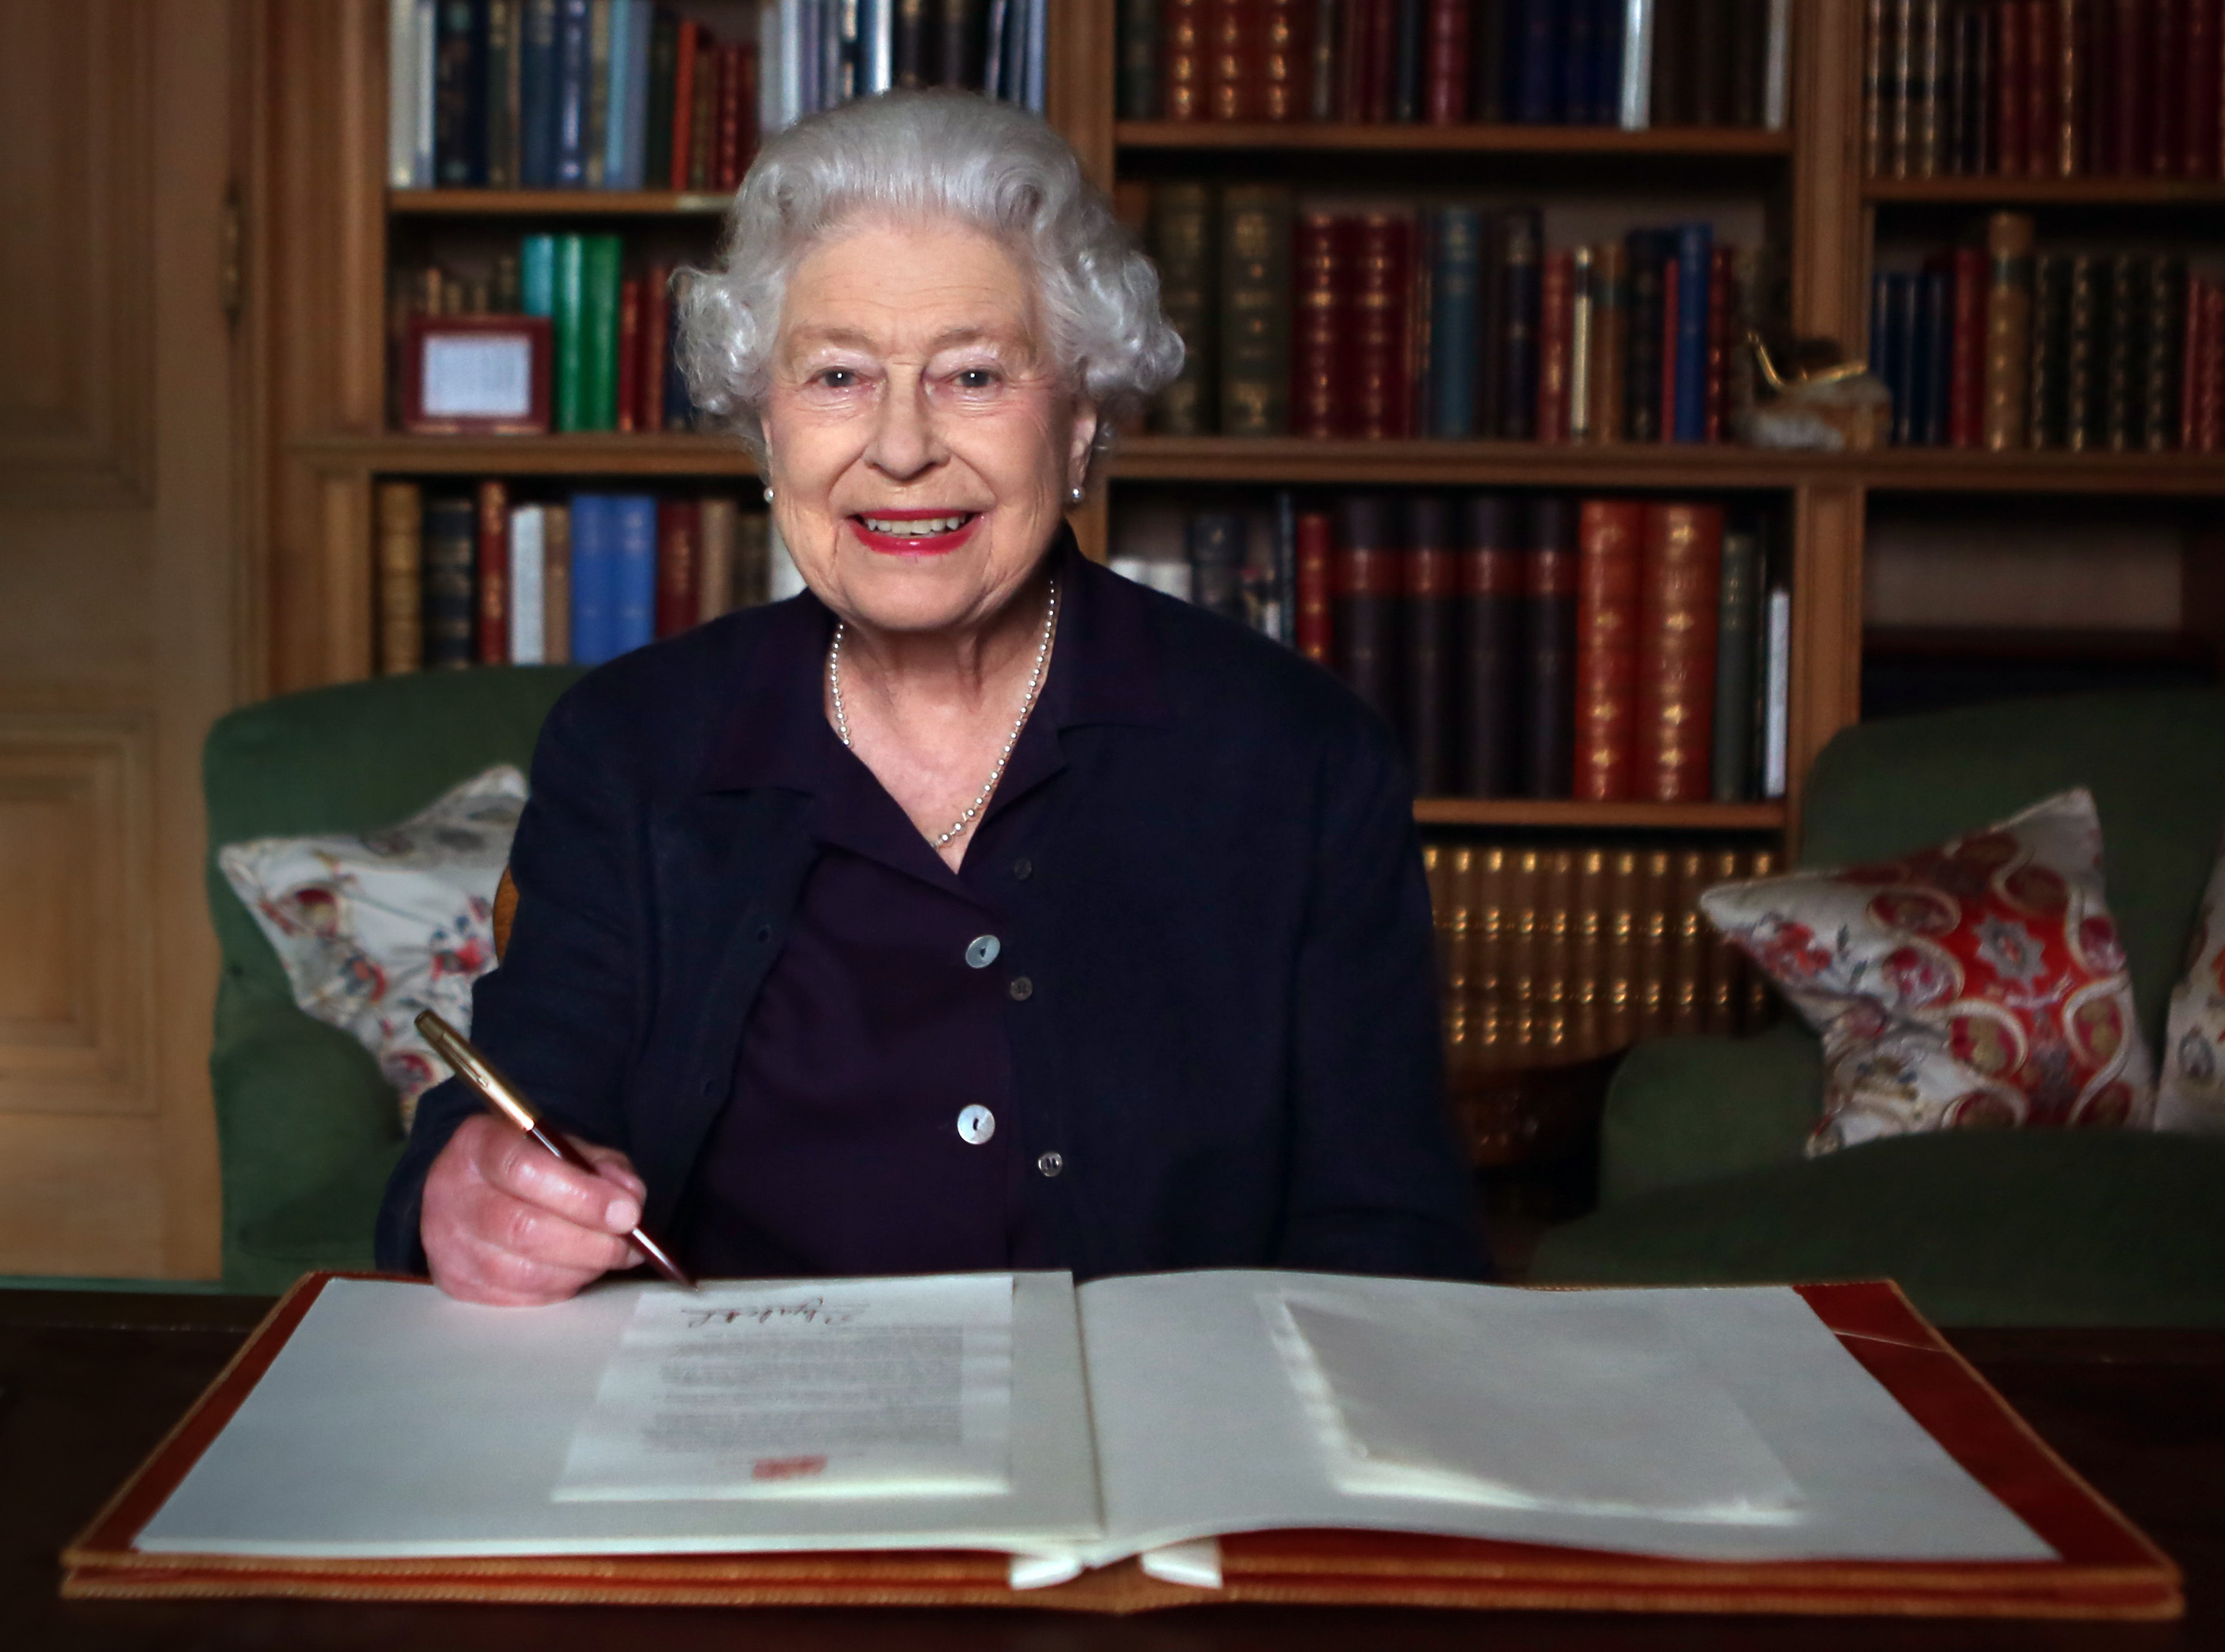 The Queen sitting at her desk in Balmoral in 2013. [Photo: PA]